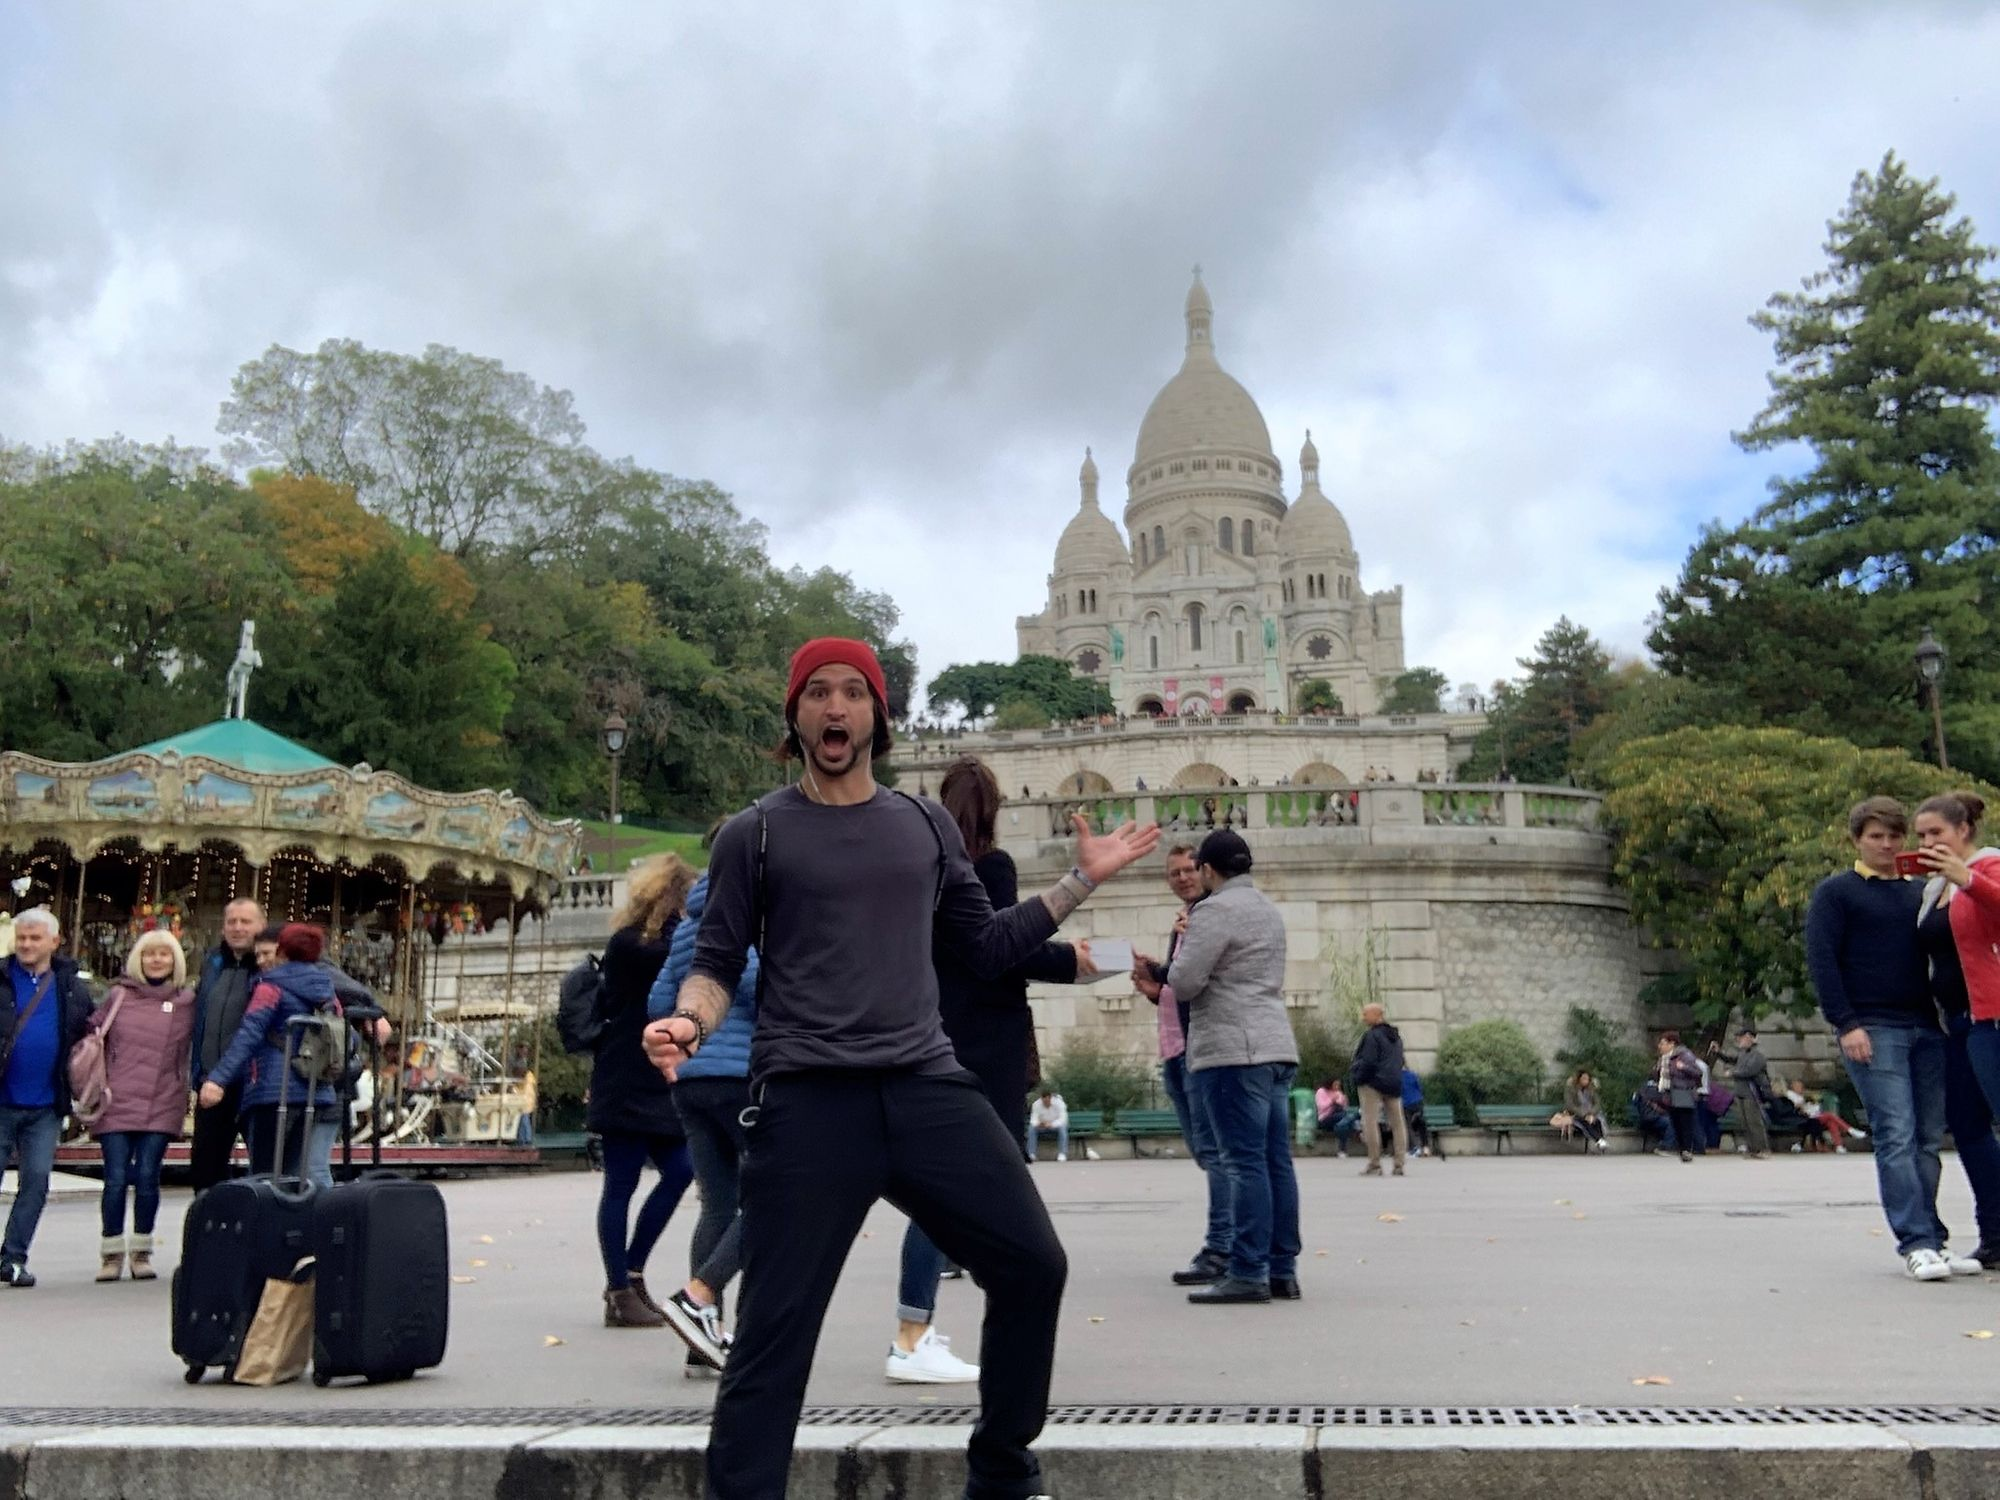 Sacre-Coeur!! You should hear me try to pronounce this lol. Crème brûlée which was DELICIOUS 😎  I know Paris is on a lot of people's top 5 cities to see but is at the bottom of anyone's list?  🤣 why?  #biggersworld #travelgram #photooftheday #travelinggram #blogger #travelblogger #travelquotes  #hostelworld #gapyear #roadto100countires #budgettraveler #budgettravel #budgetlife #tiredofworking